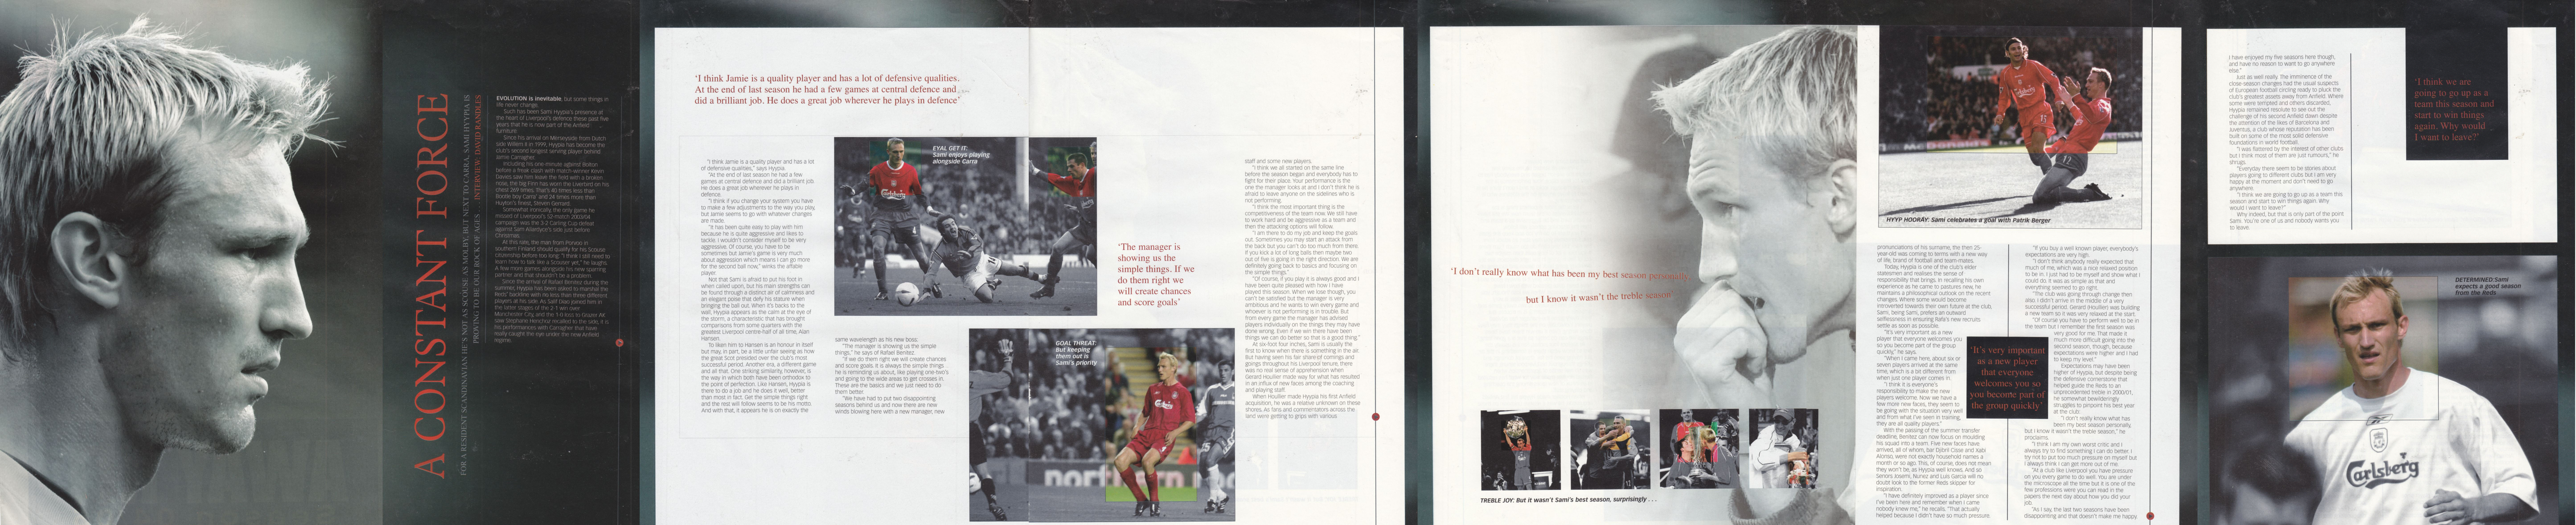 Matchday Magazine interview in September 2004